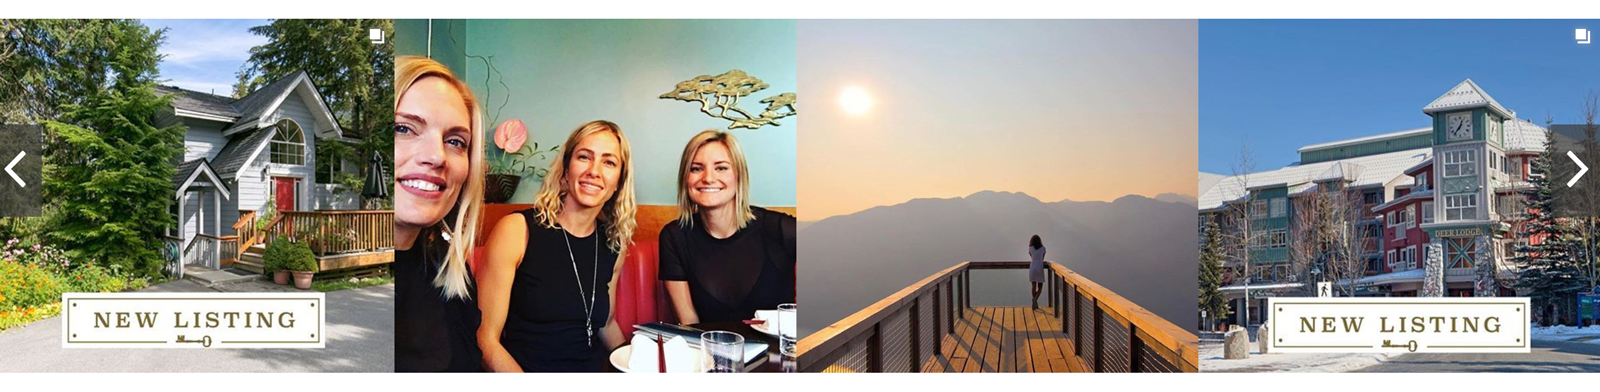 The Sea to Sky Dream Team - Instagram Feed